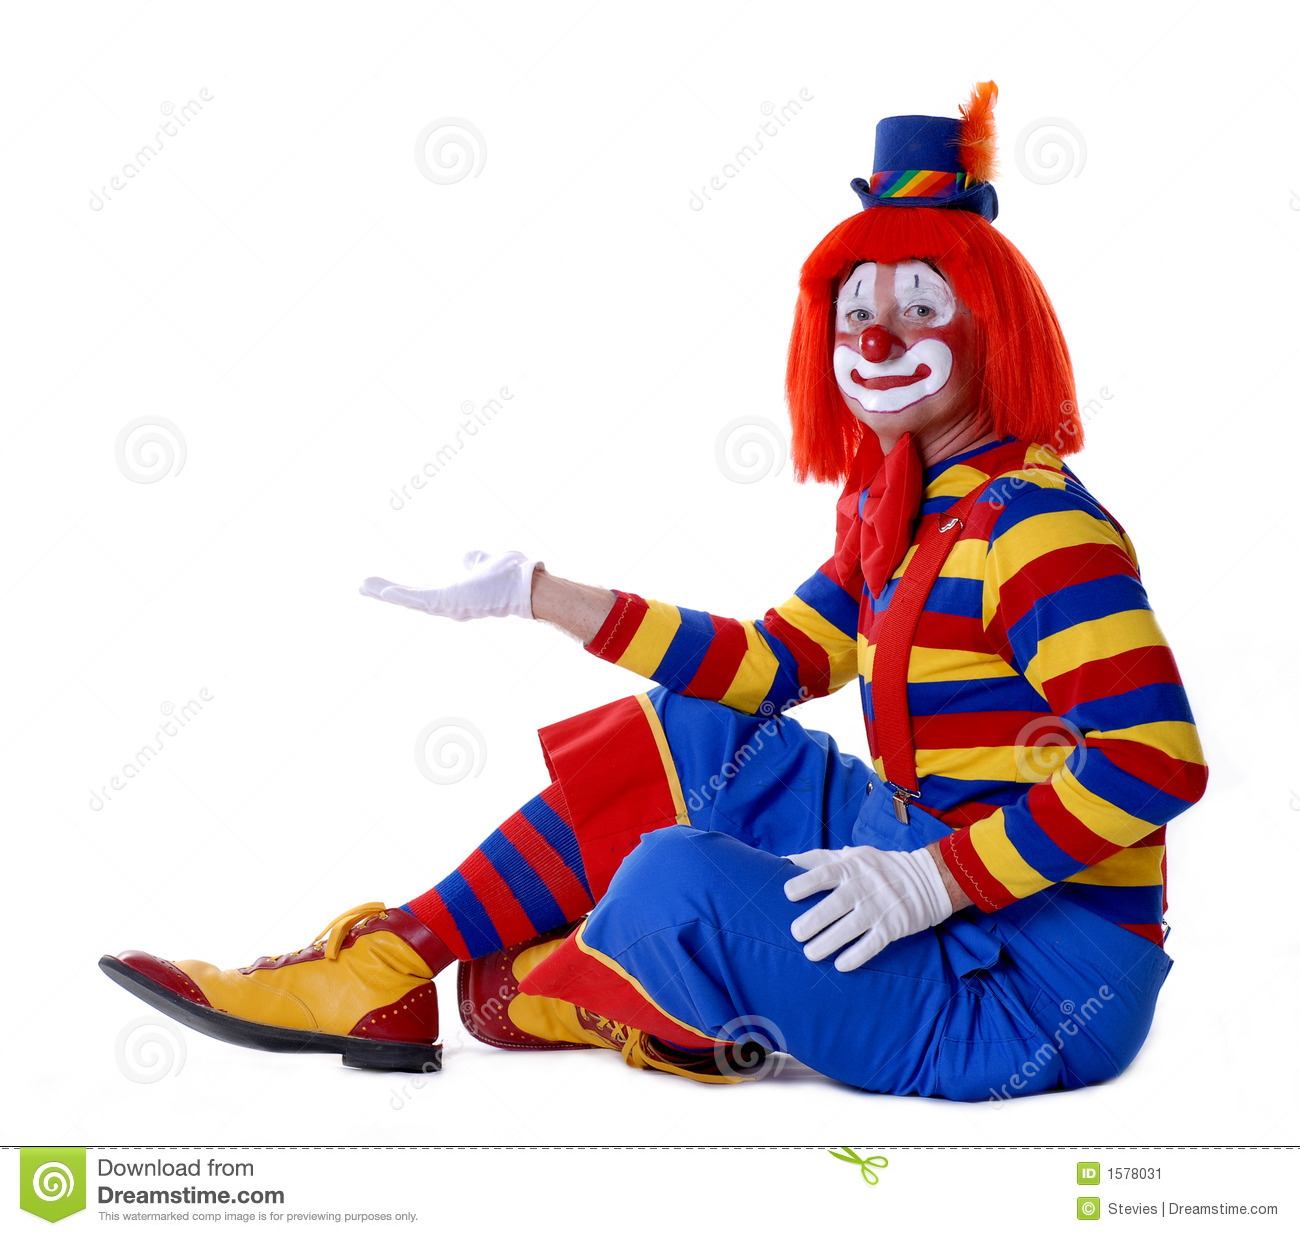 Sitting circus clown holding your product in his hand.